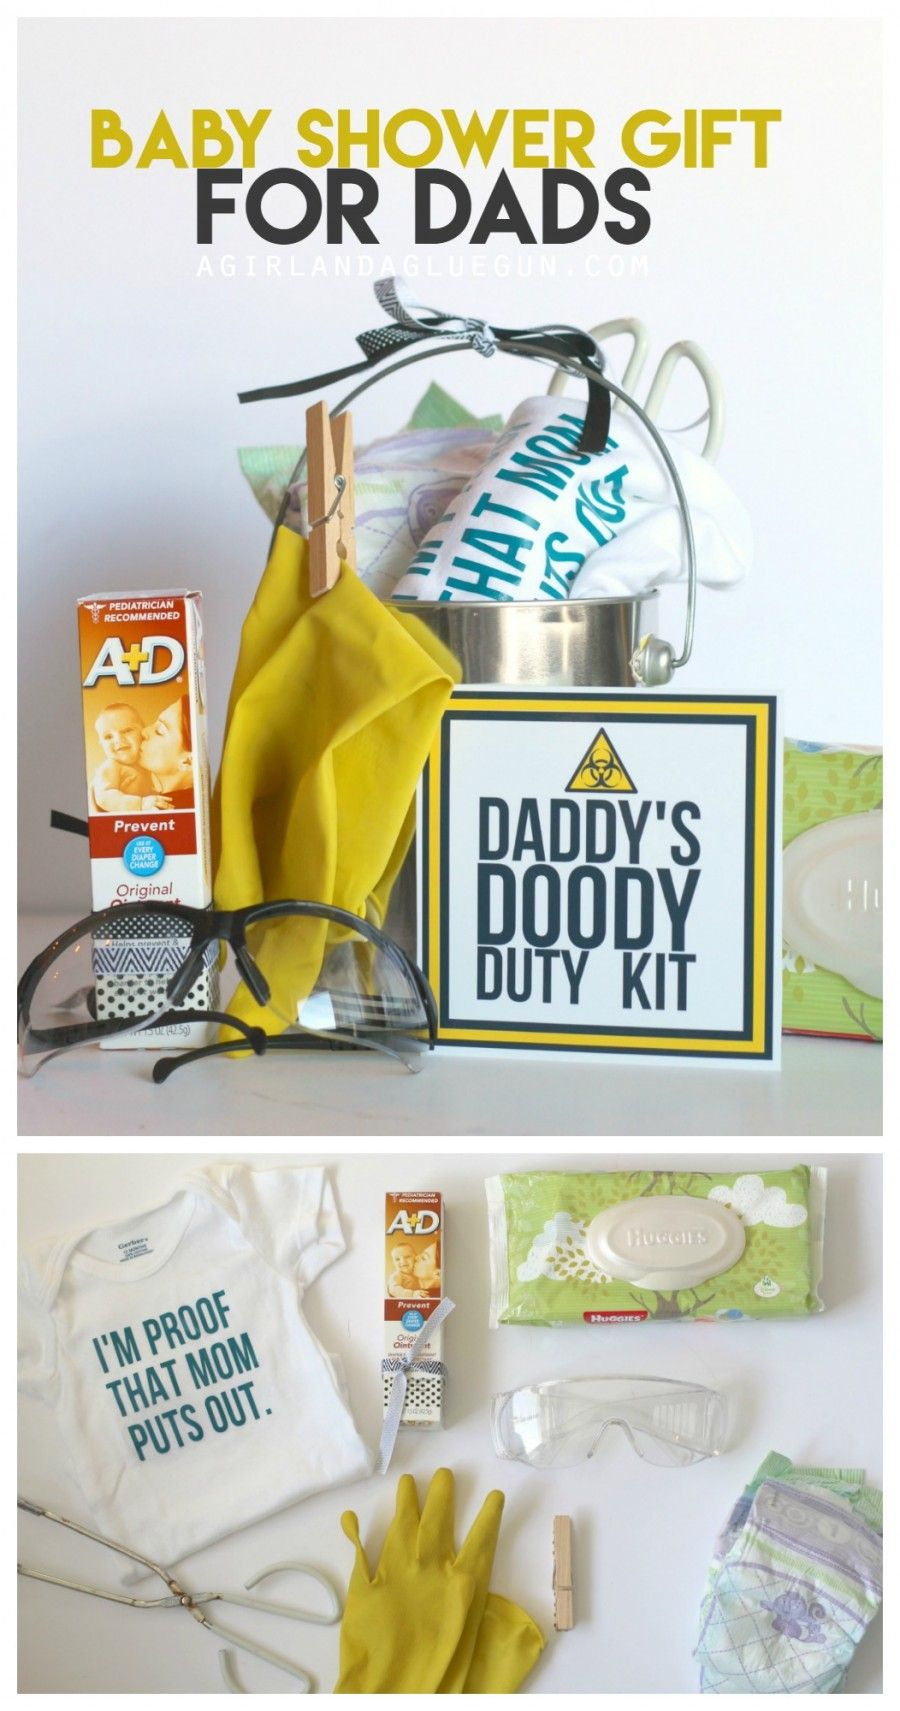 funny baby shower gift-daddy doody duty kit | gift ideas | baby